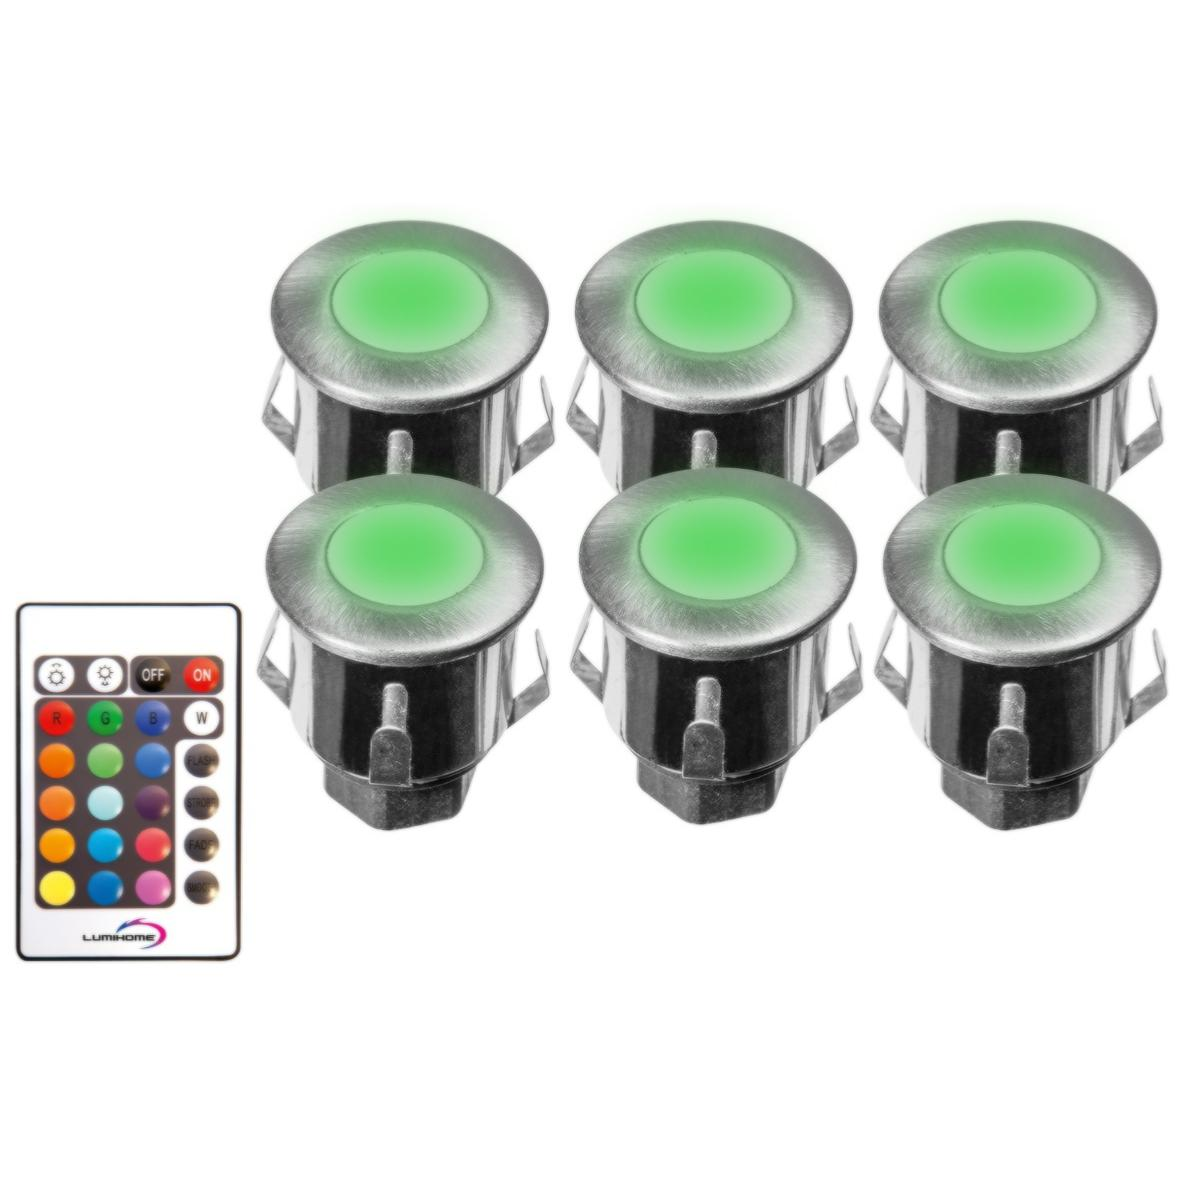 Spot encastrable terrasse piscine 12v 28 images spot for Spot led encastrable exterieur terrasse